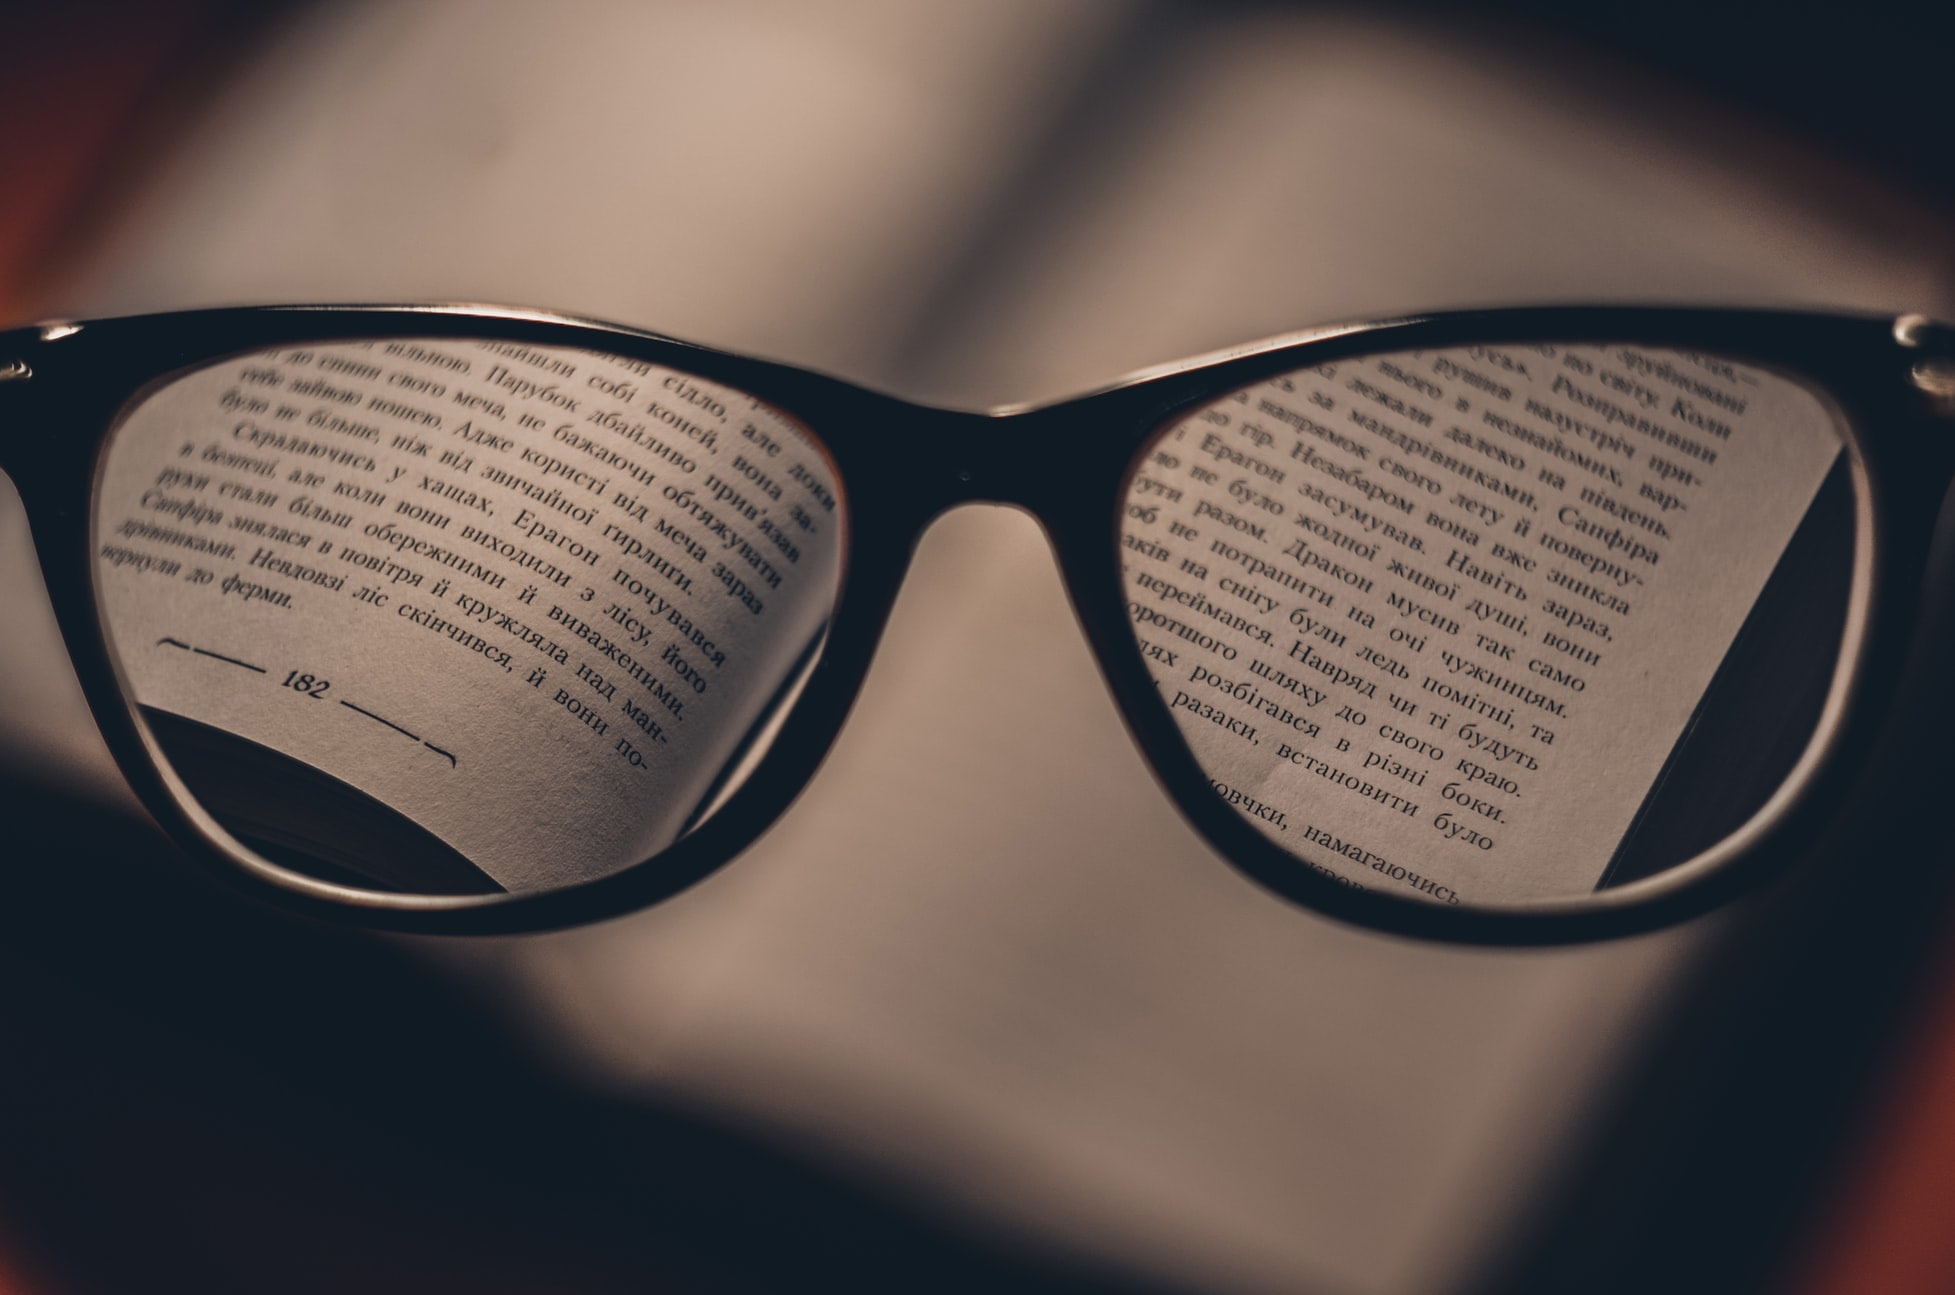 Seeing a book through glasses